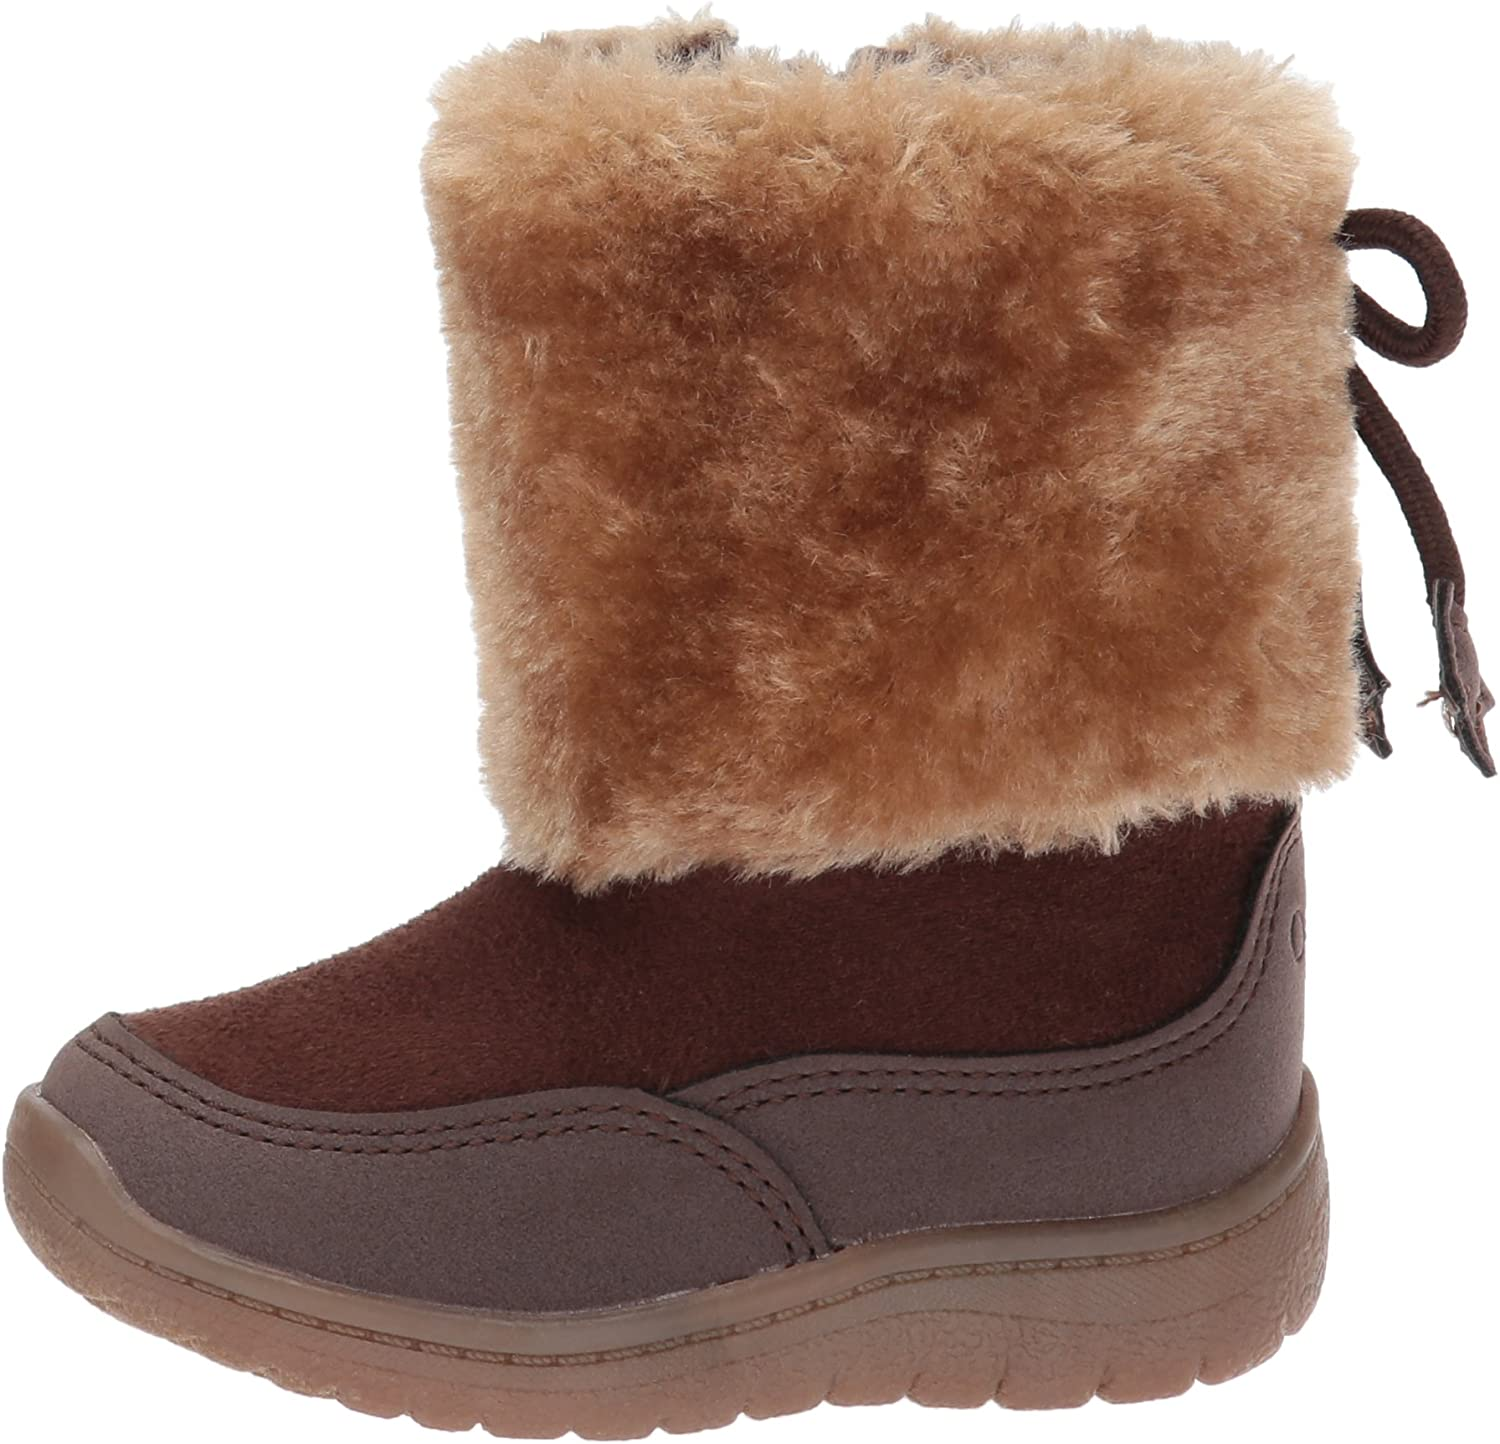 OshKosh BGosh Kids Sloane Girls Sherpa Boot Fashion